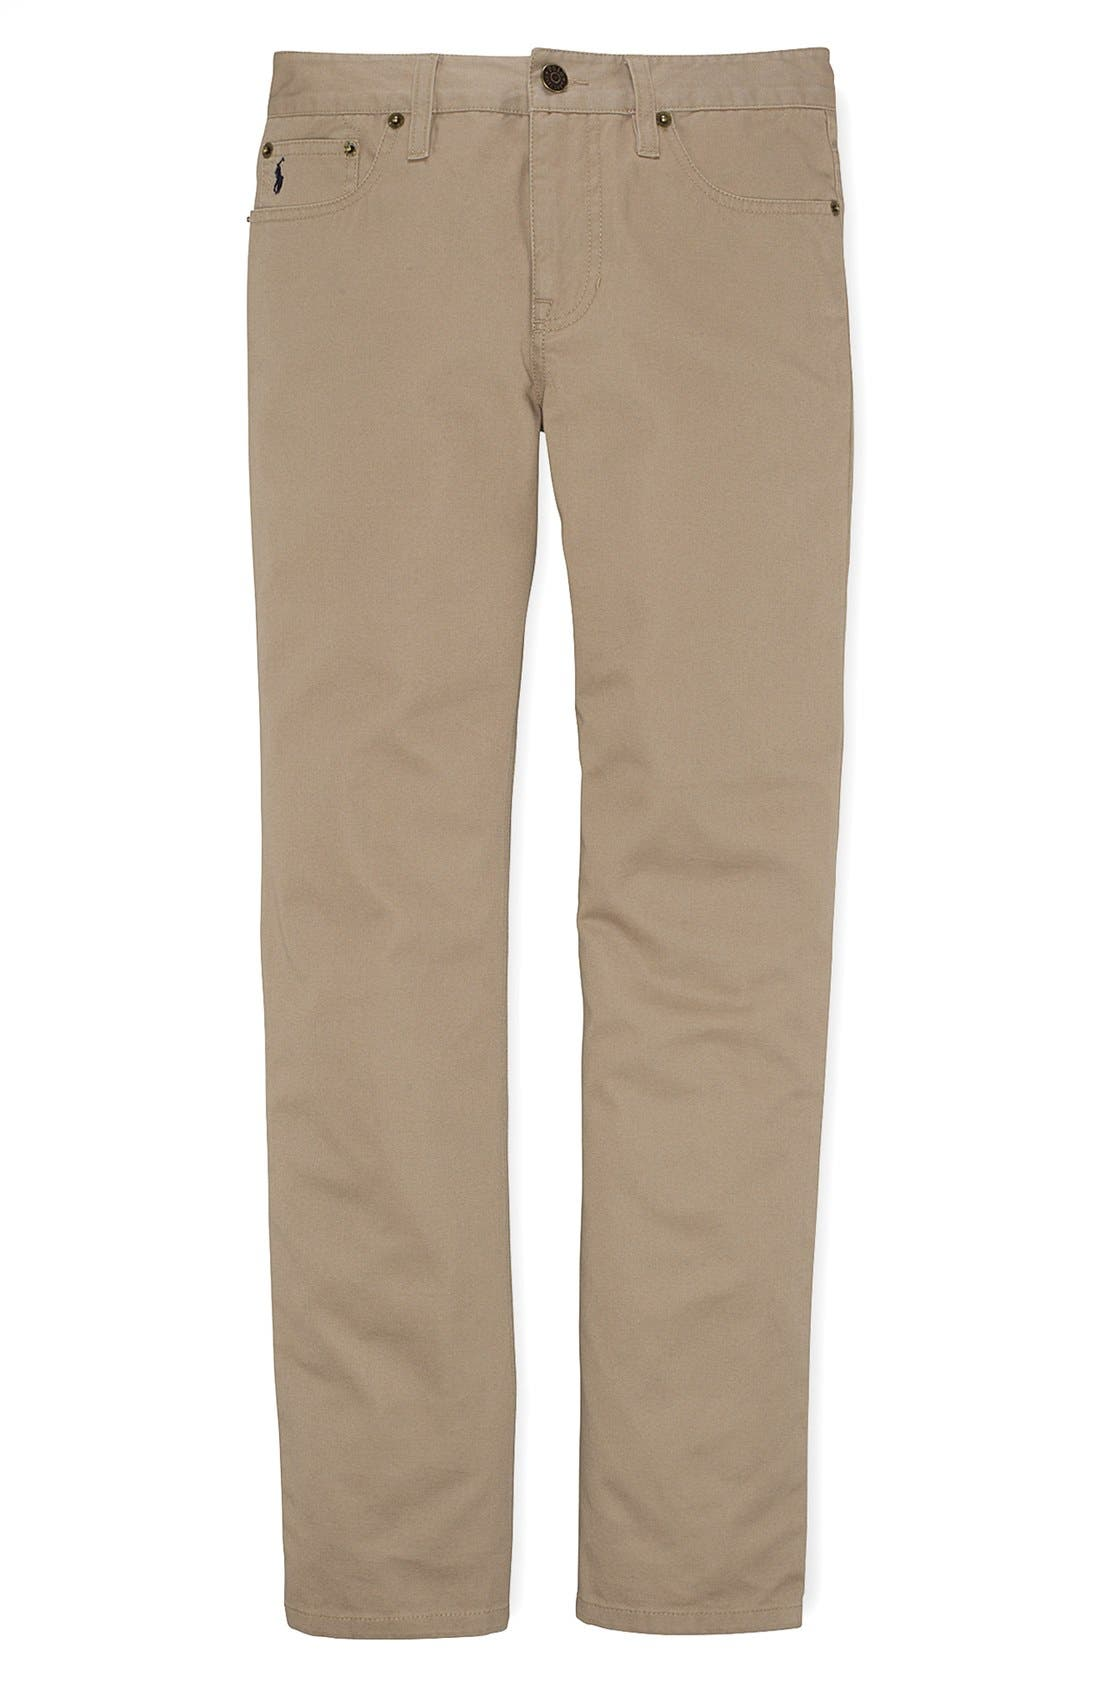 Main Image - Ralph Lauren Chinos (Big Boys)